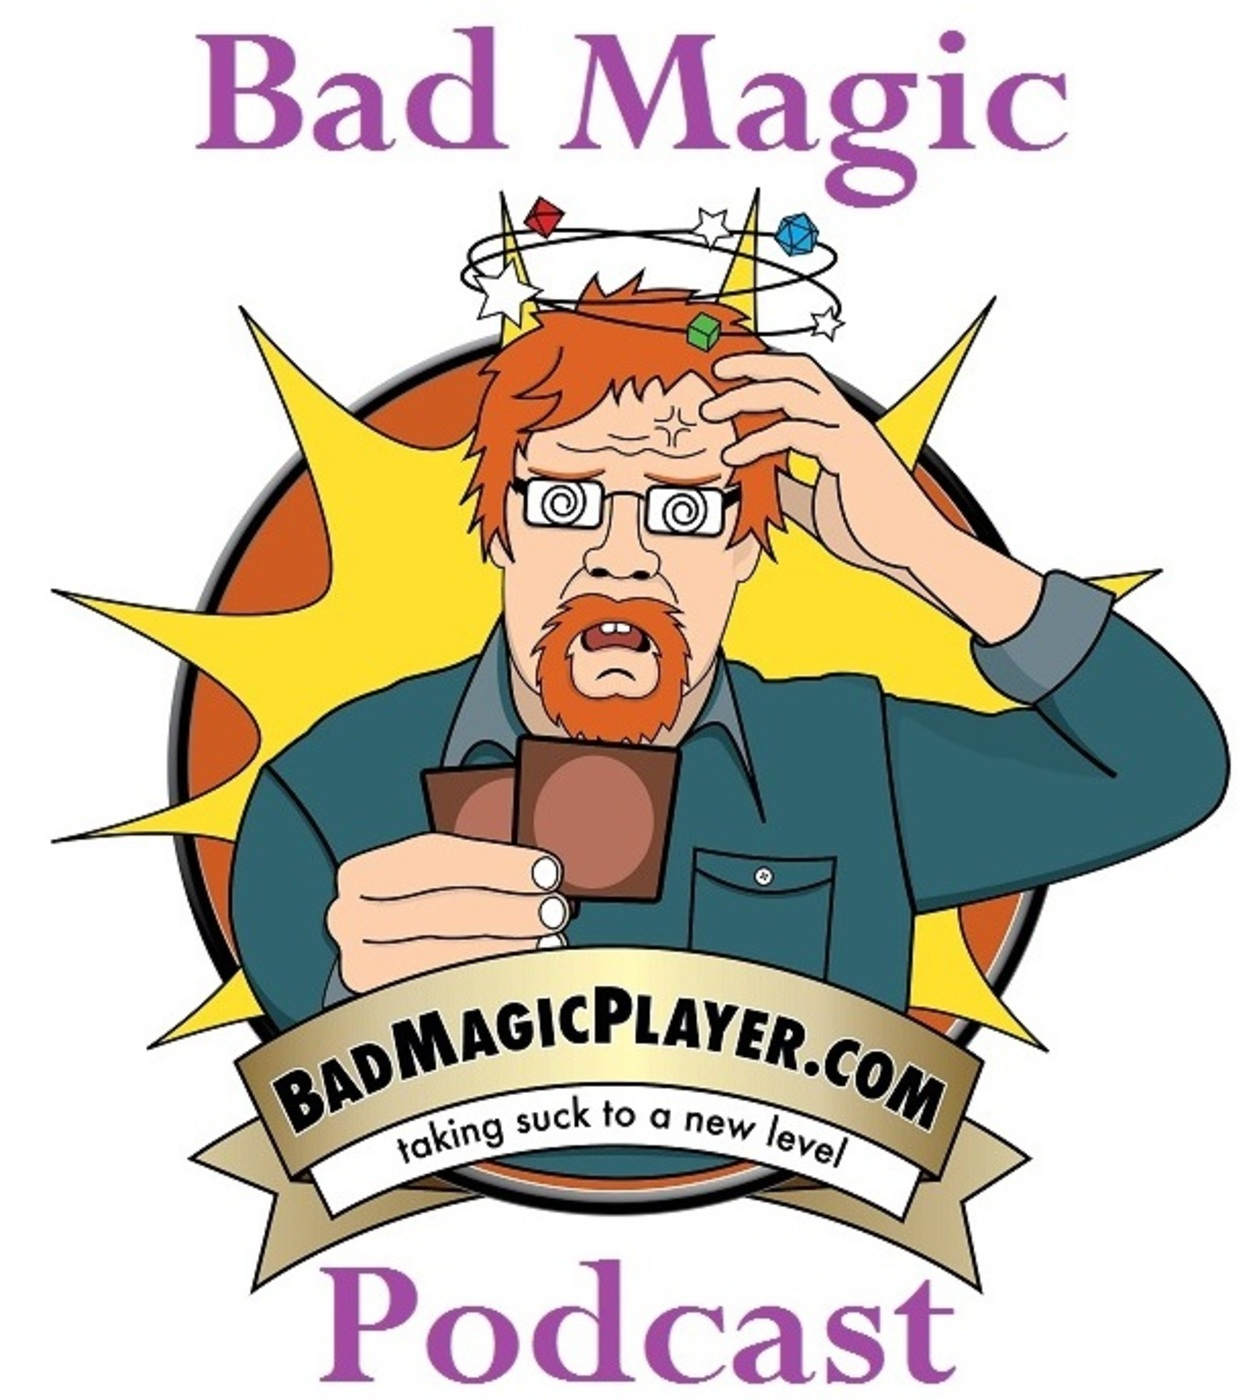 The Bad Magic Podcast